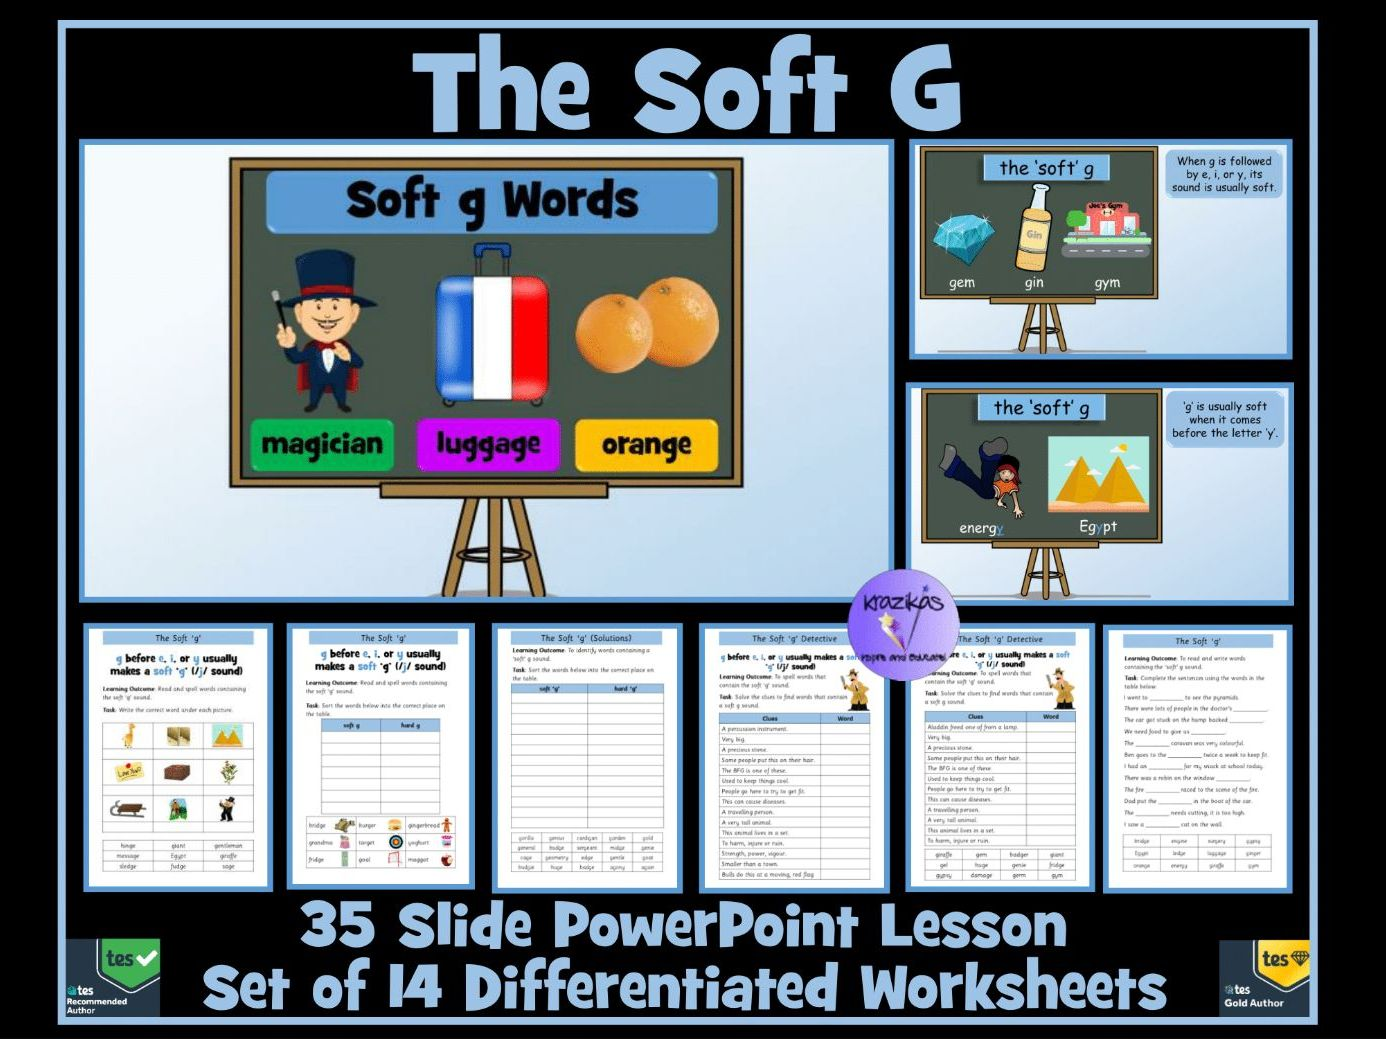 The Soft G: PowerPoint Lesson and Set of 14 Worksheets